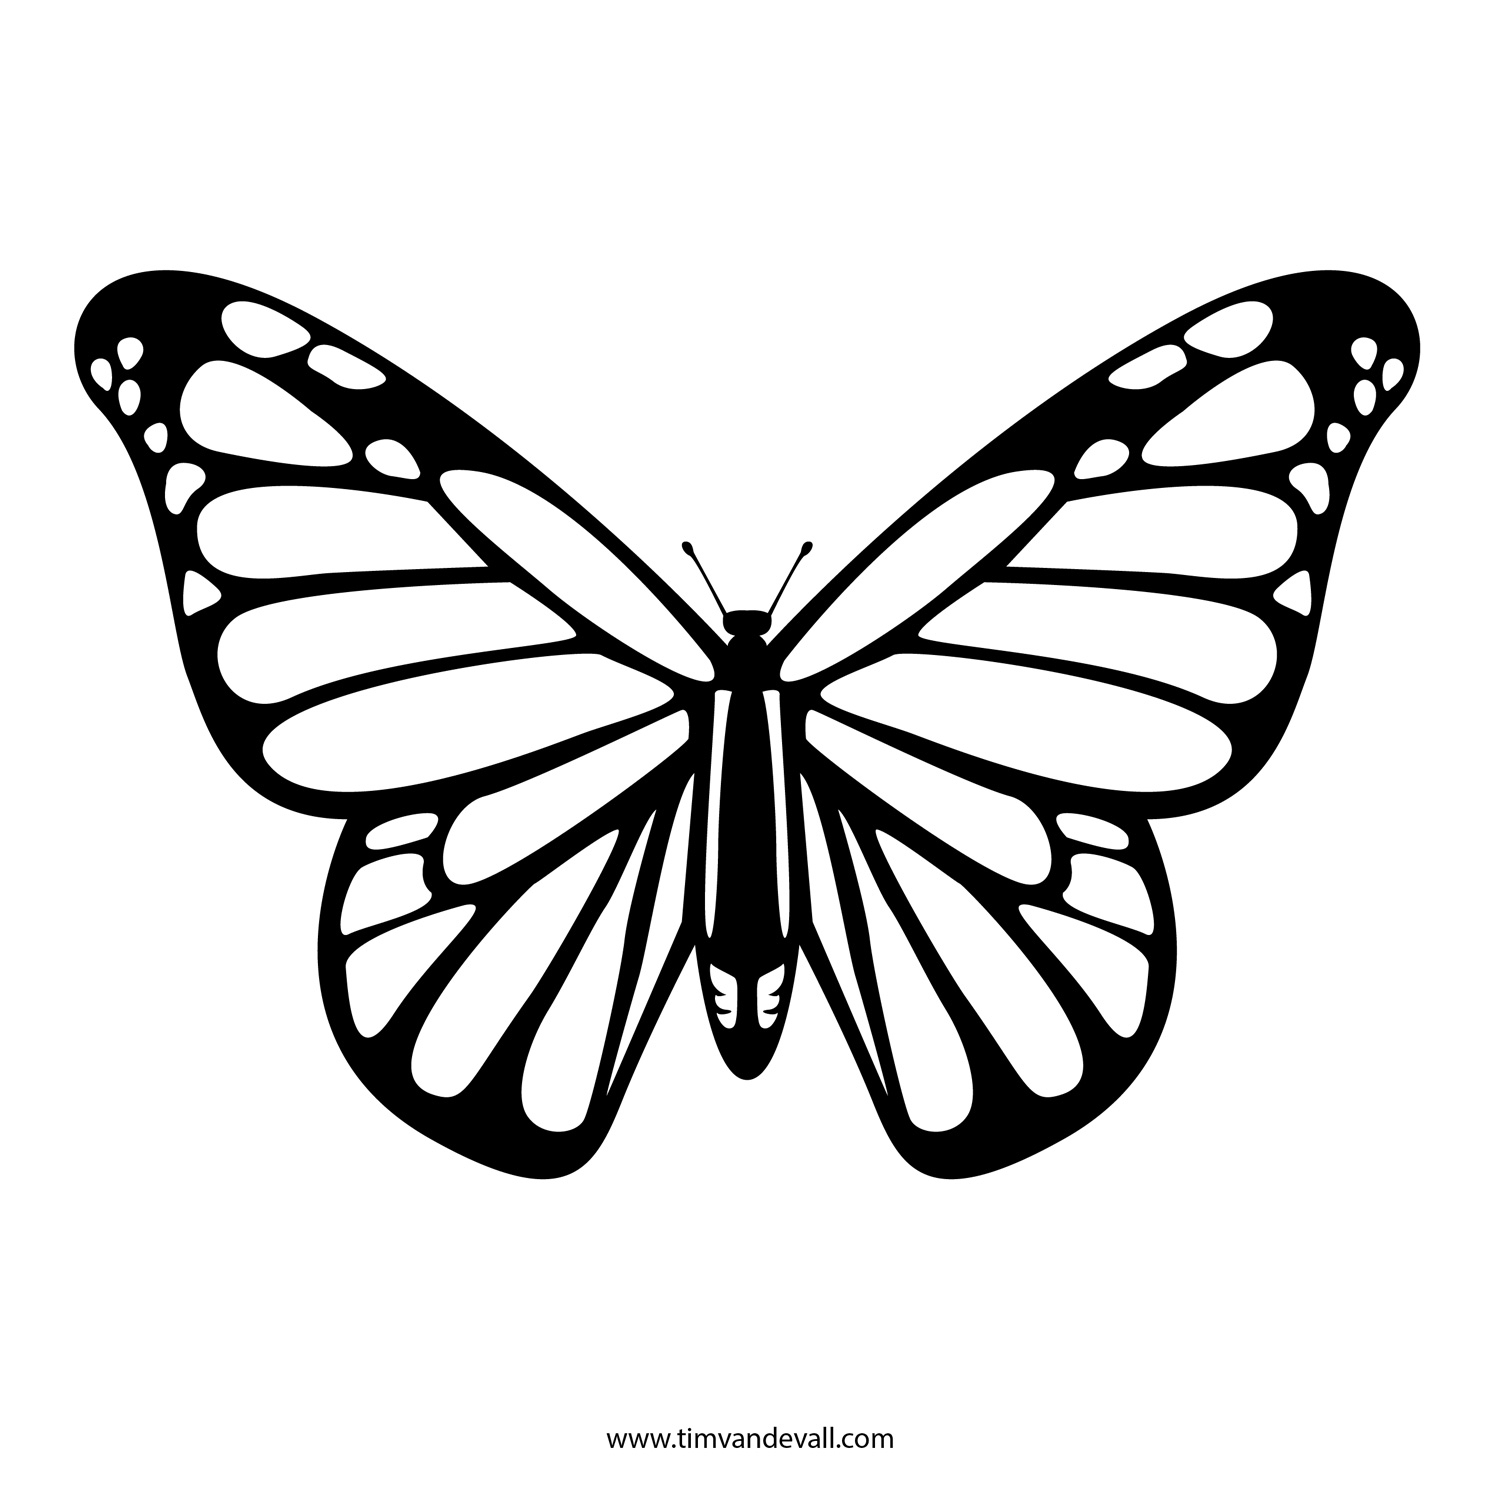 1500x1500 Monarch Butterfly Drawings How To Draw A Monarch Butterfly